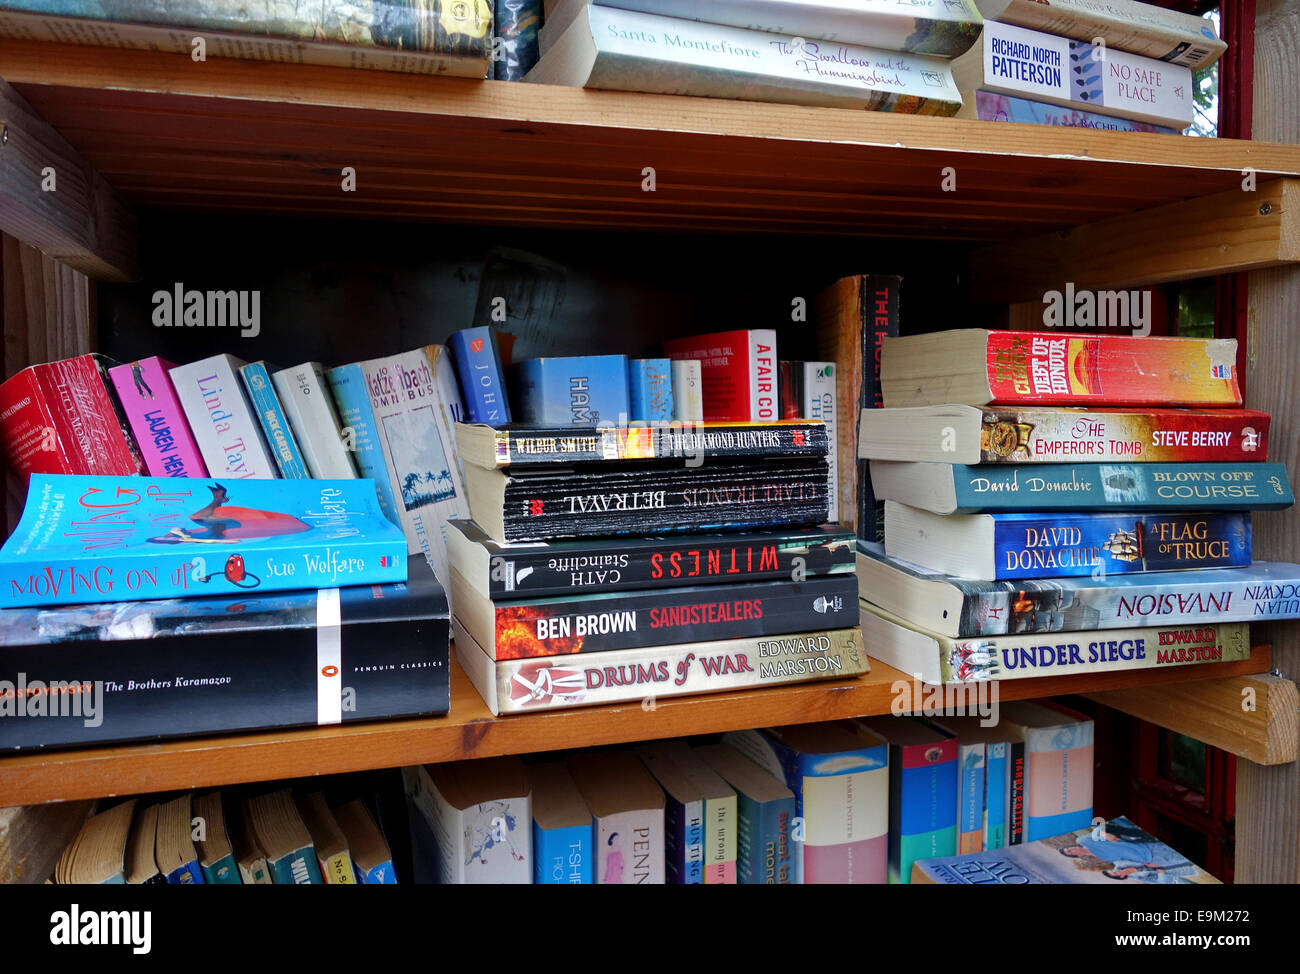 Paperback books library - Stock Image